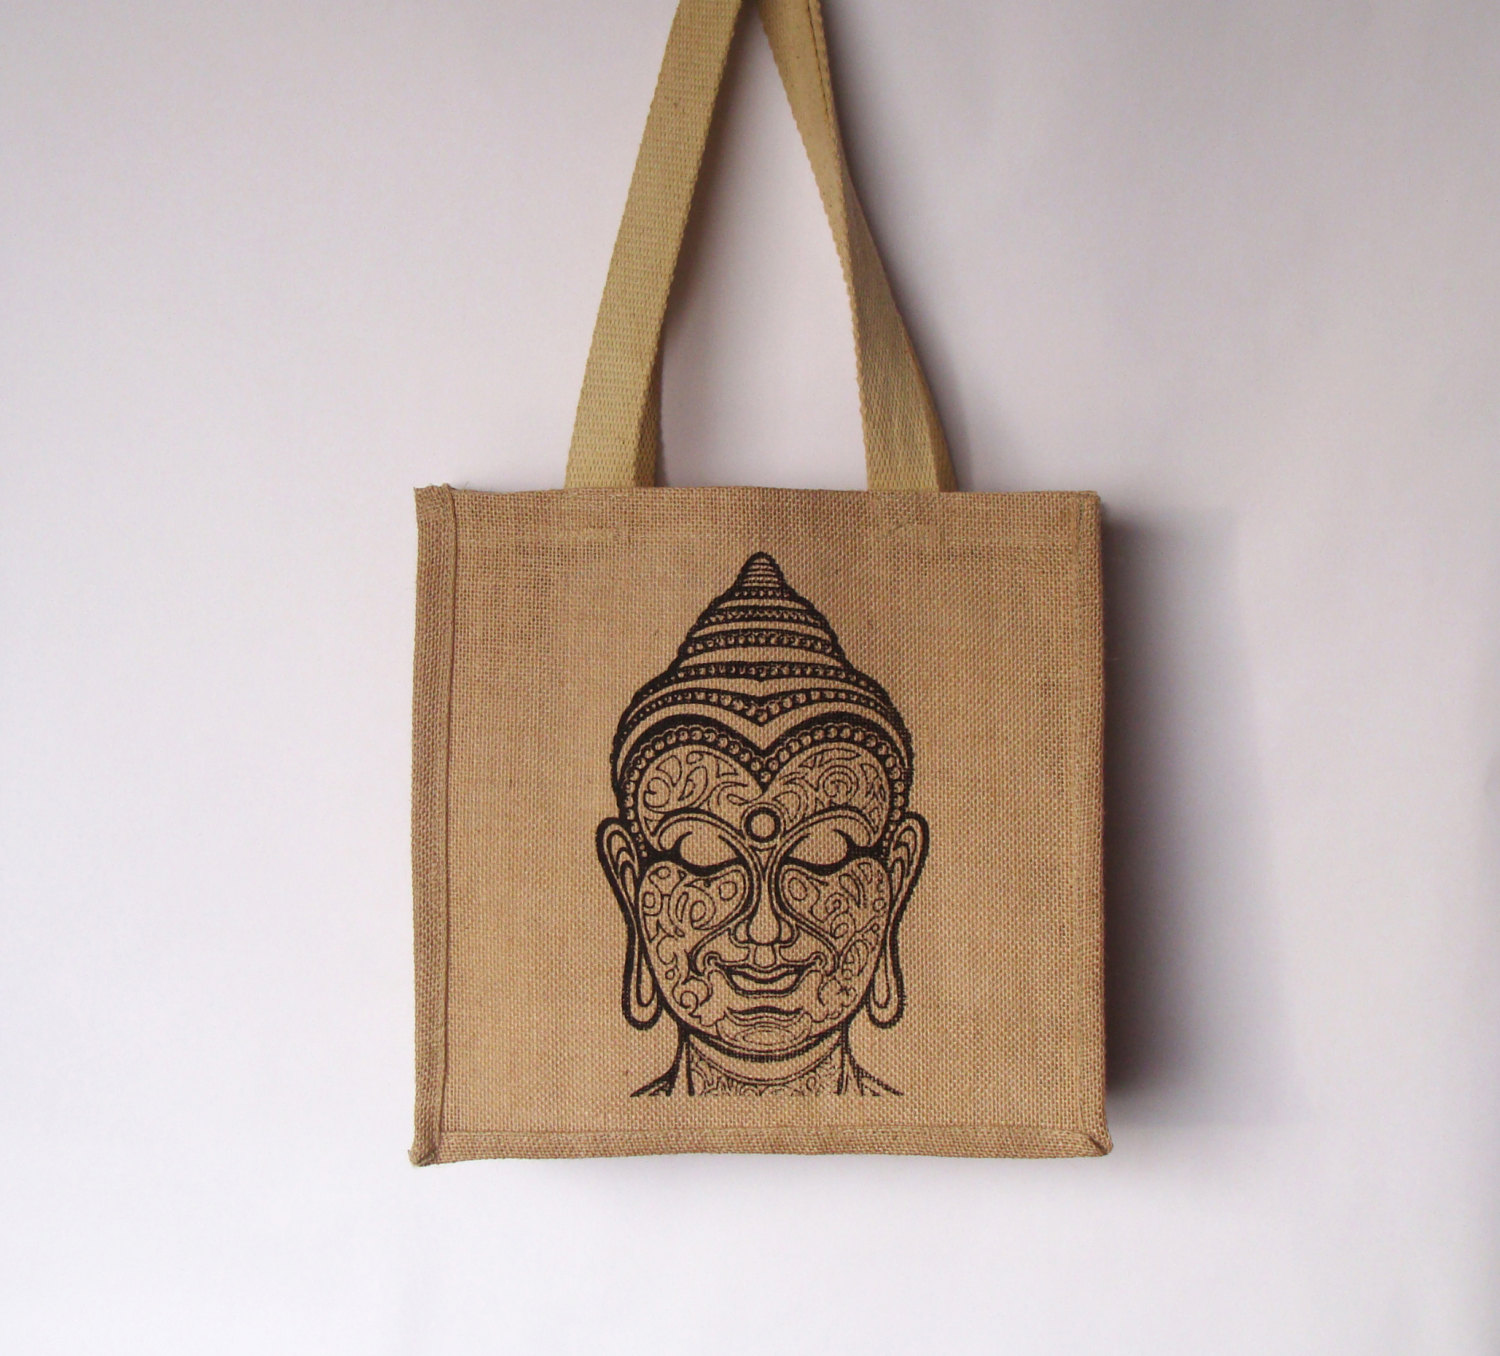 Buddha Jute tote bag, Yoga Jute bag, Buddha bag, Burlap tote, Hand screen printed bag, Shopping tote